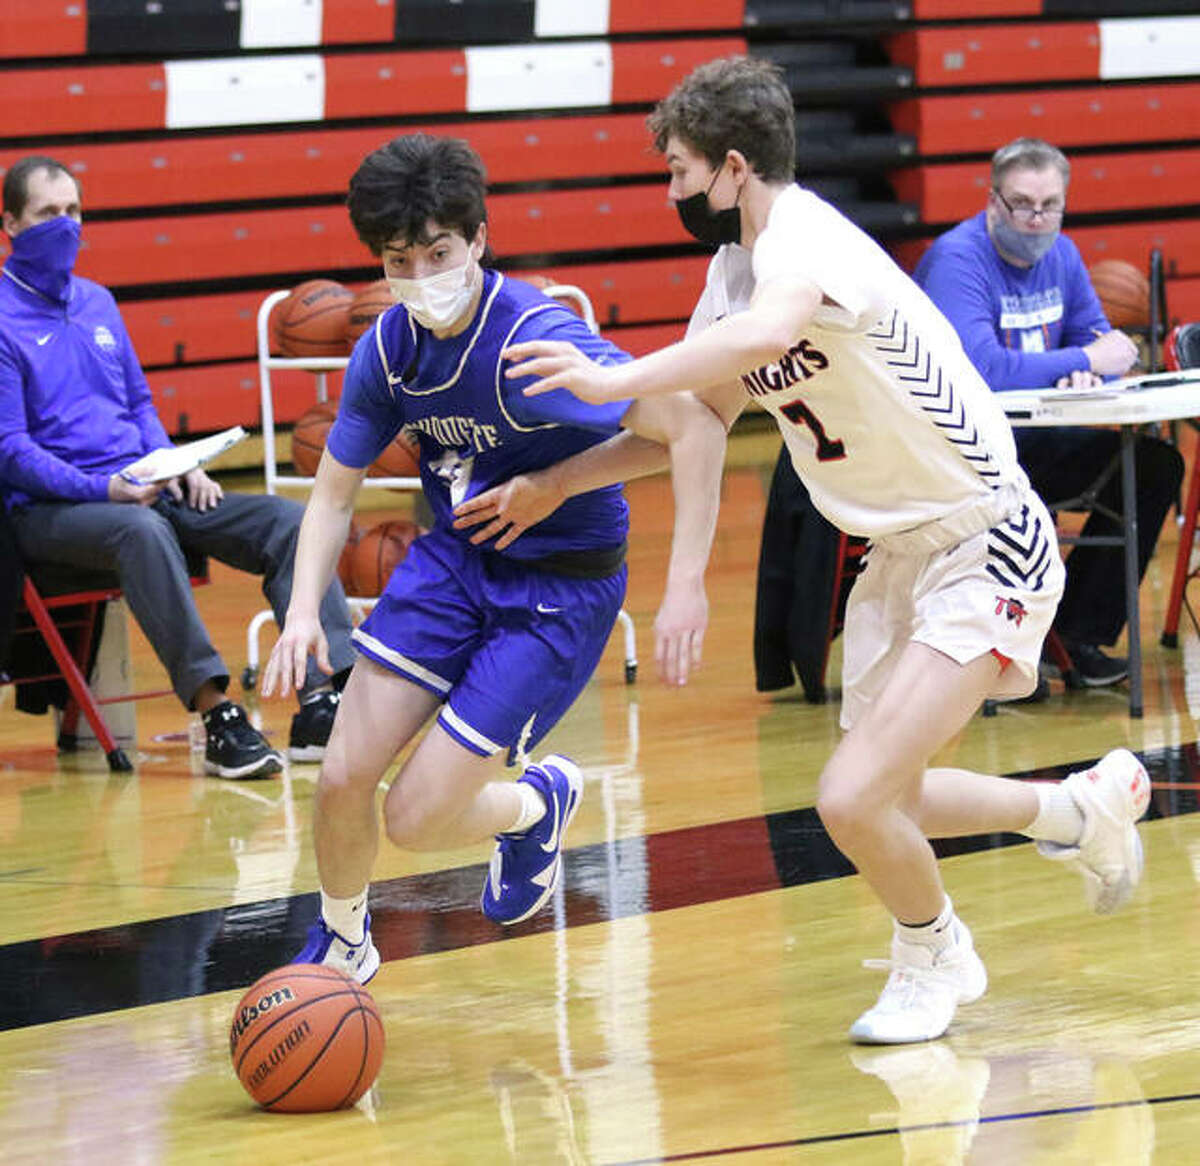 Marquette Catholic's Owen Williams (left) drives past Triad's Jake Stewart during a game last season in Troy. Williams is a senior and will lead an Explorers team in its first season as a member of the new Gateway Metro Conference in the 2021-22 season.